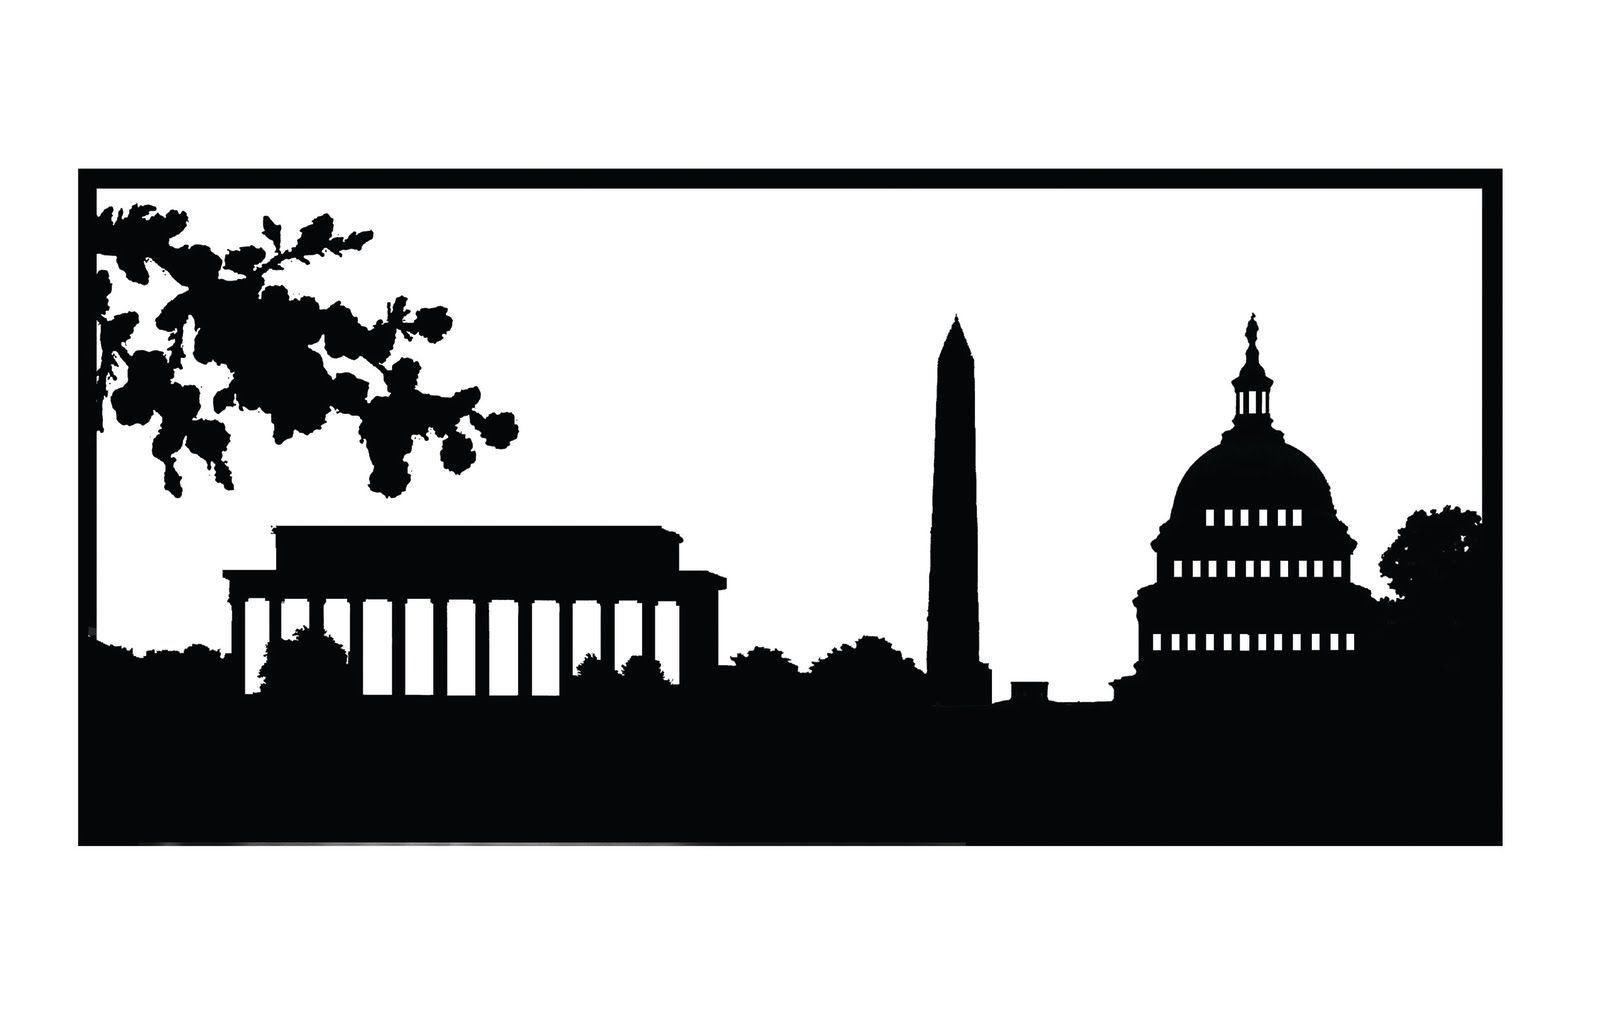 Dc Skyline Silhouette This Could Be A Cool Tattoo Although Id Lincoln Town Car Want The National Cathedral Included